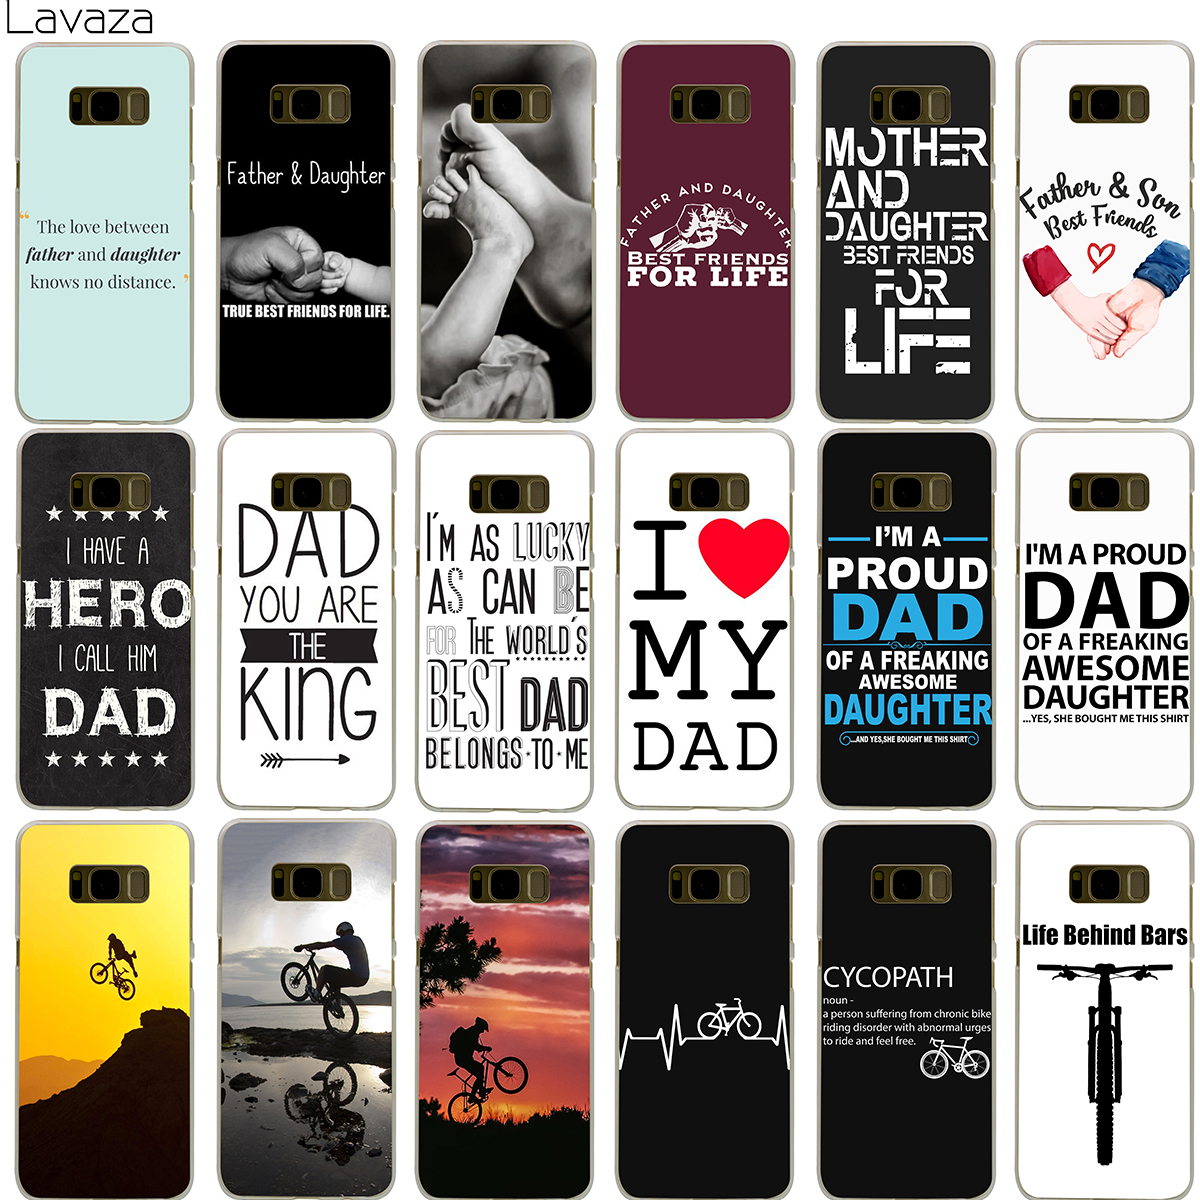 Lavaza Family Daddy And Daughter Son Im A Proud Dad Case for Samsung Galaxy S5 S6 S7 Edge S9 S8 Plus